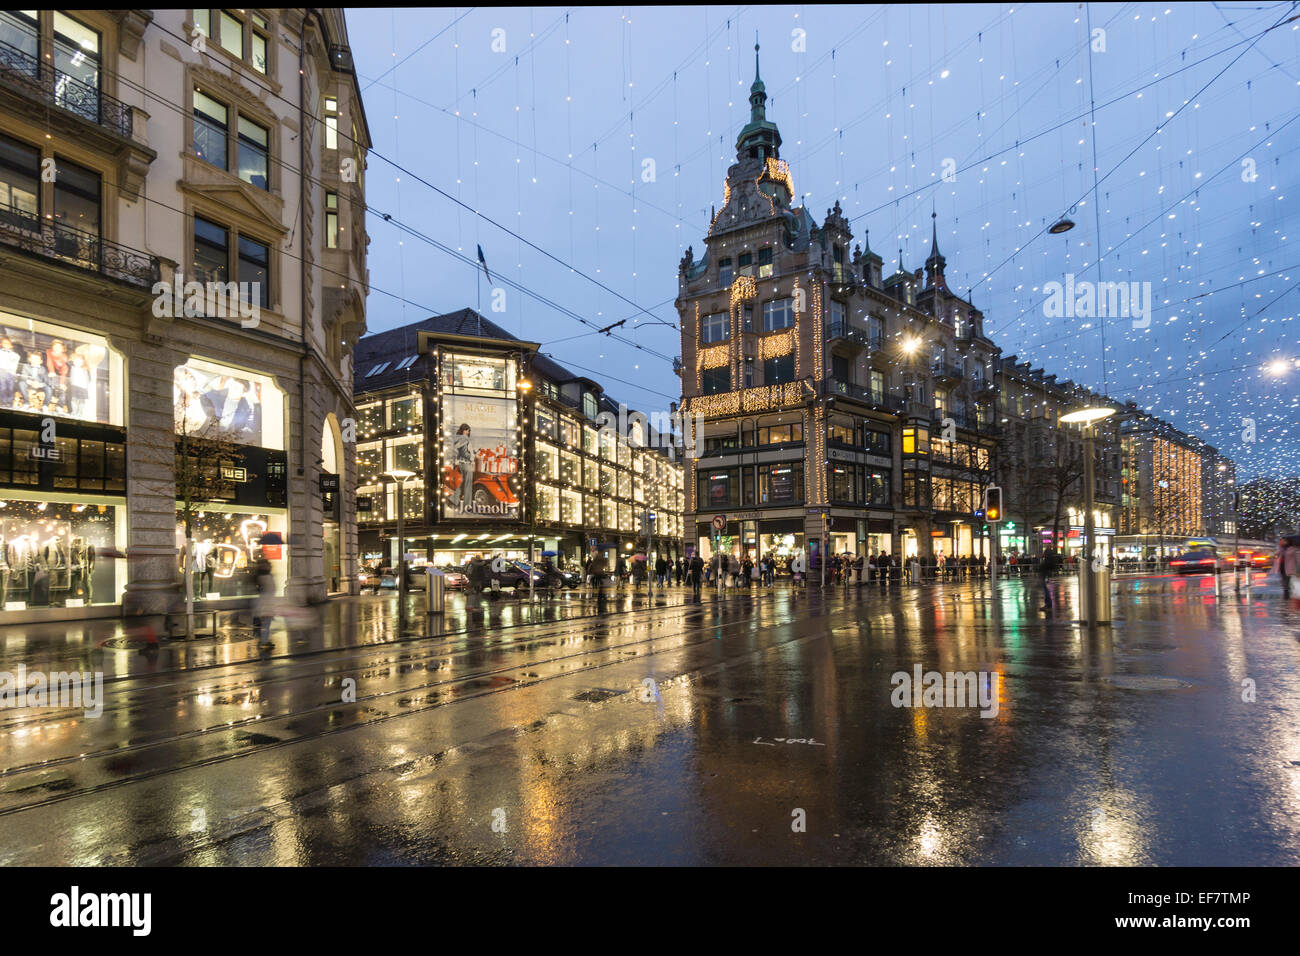 Zurich City Center, Bahnhofstrasse, Shopping, Jelmoli Warehouse, Winter, Zurich, Switzerland - Stock Image